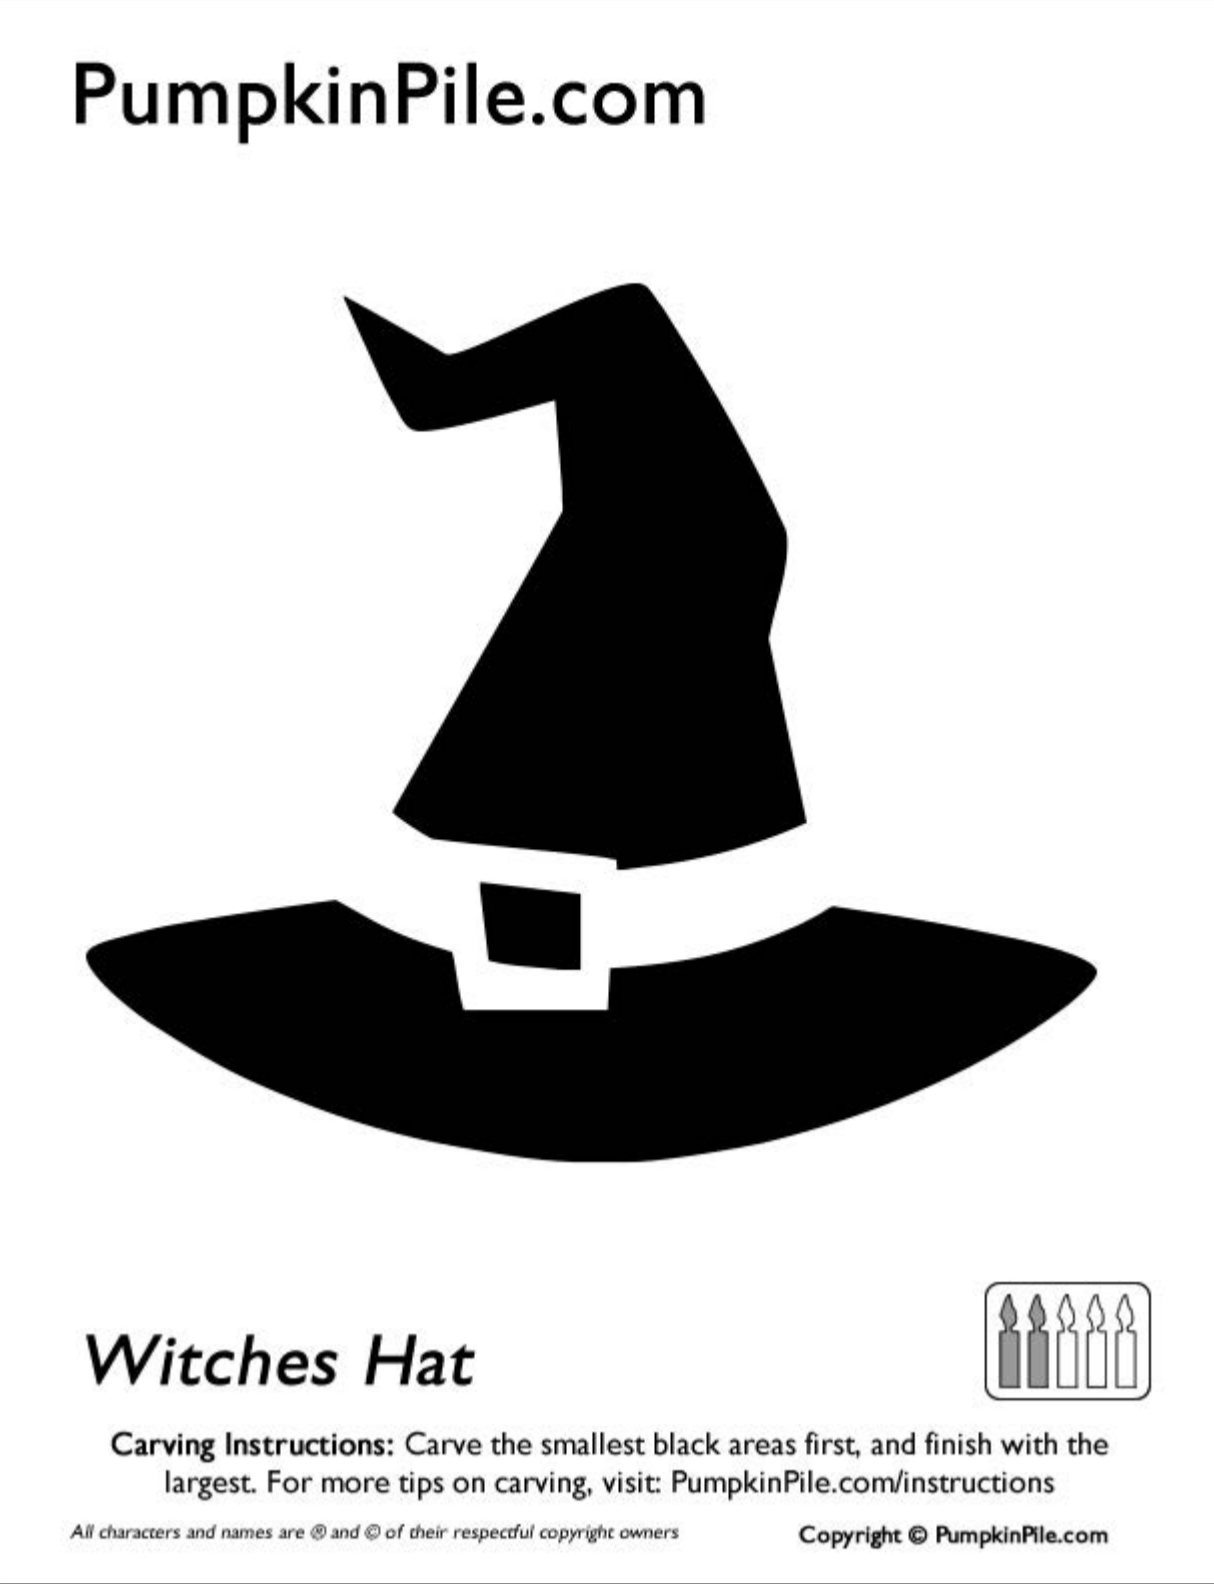 photograph regarding Witches Hat Template Printable identified as 16 simple towards hire pumpkin carving stencils towards guidance by yourself acquire